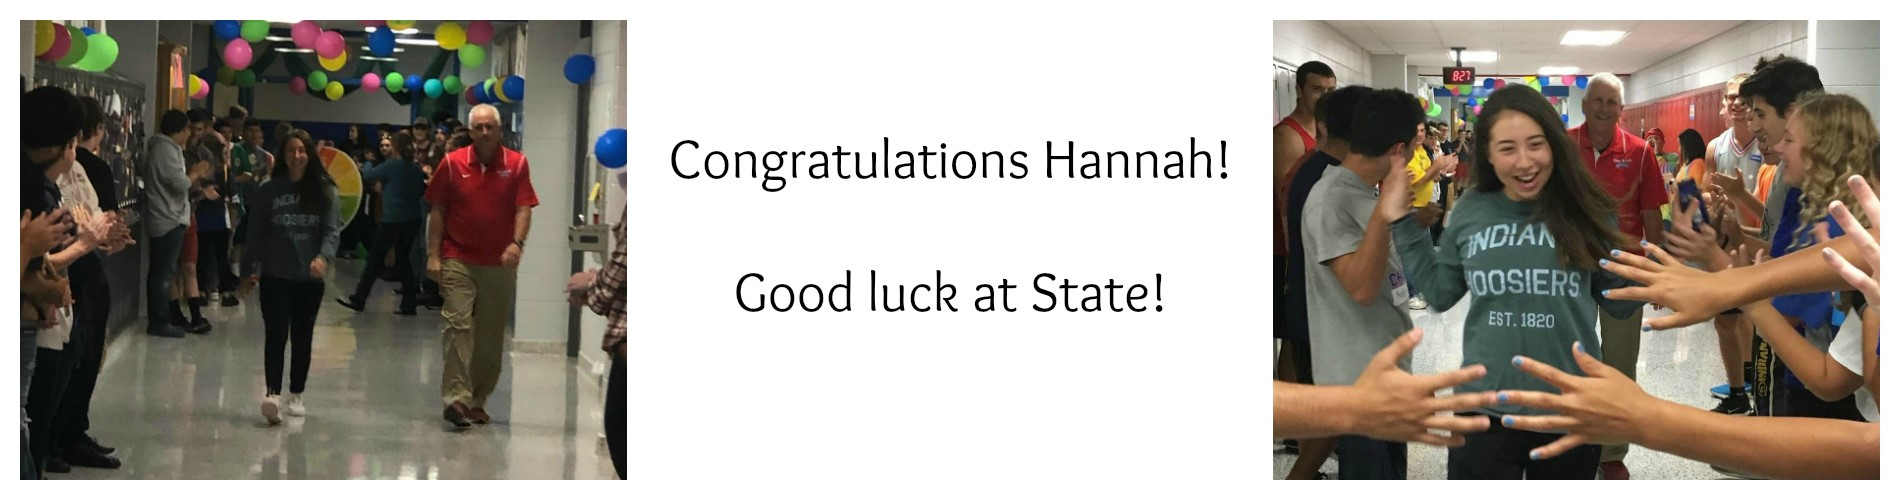 Hannah receiving good wishes from classmates for state competition.